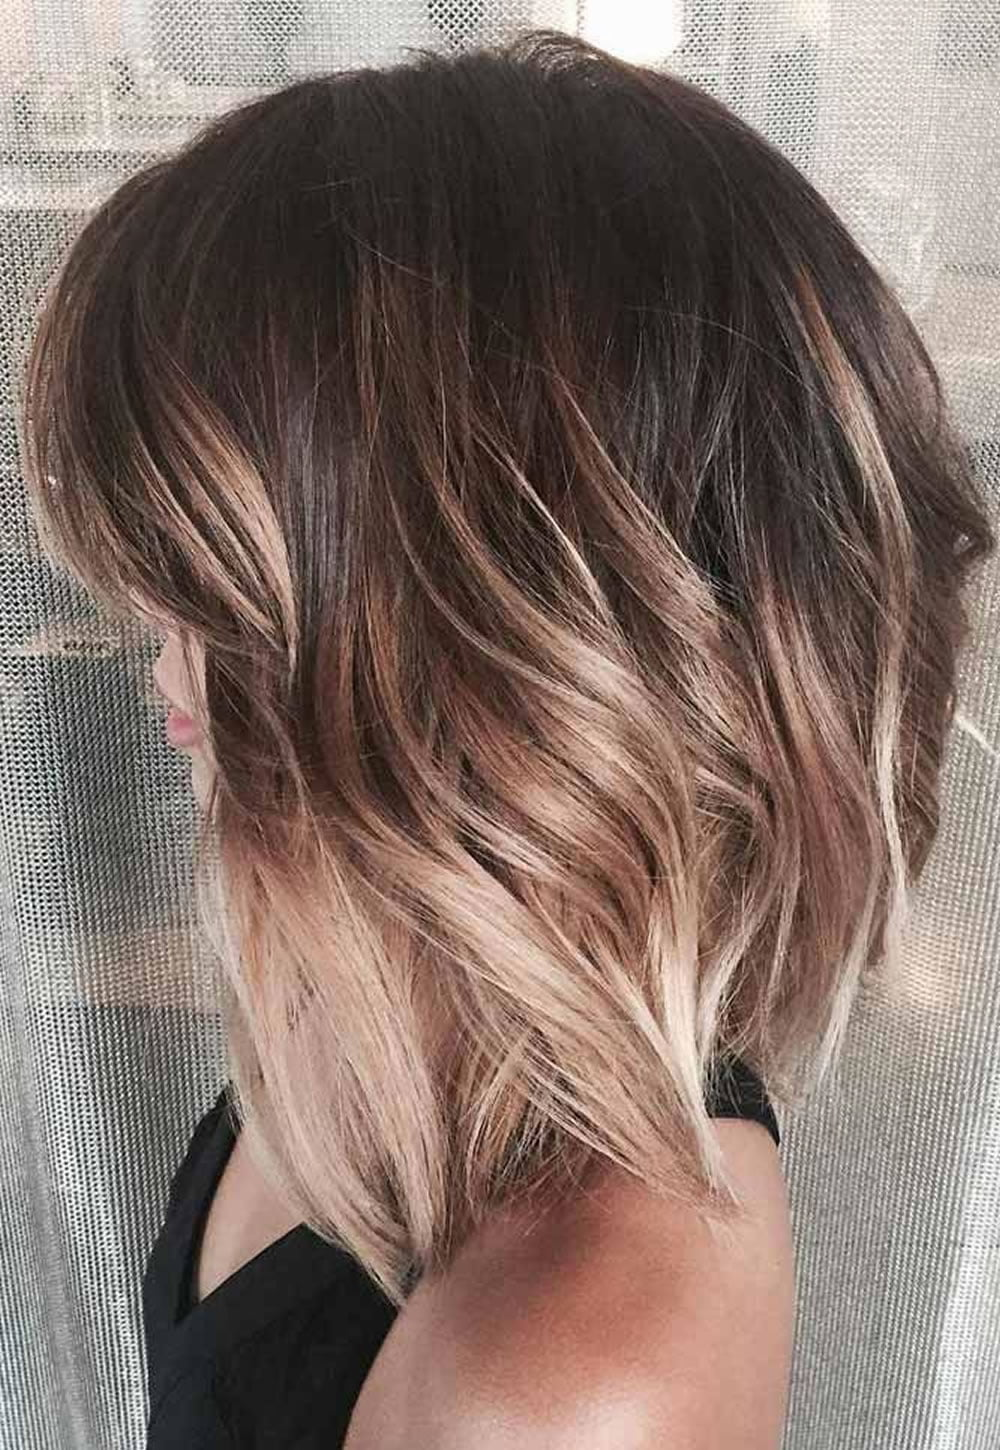 asymmetrical short haircuts with balayage highlights 2018. Black Bedroom Furniture Sets. Home Design Ideas